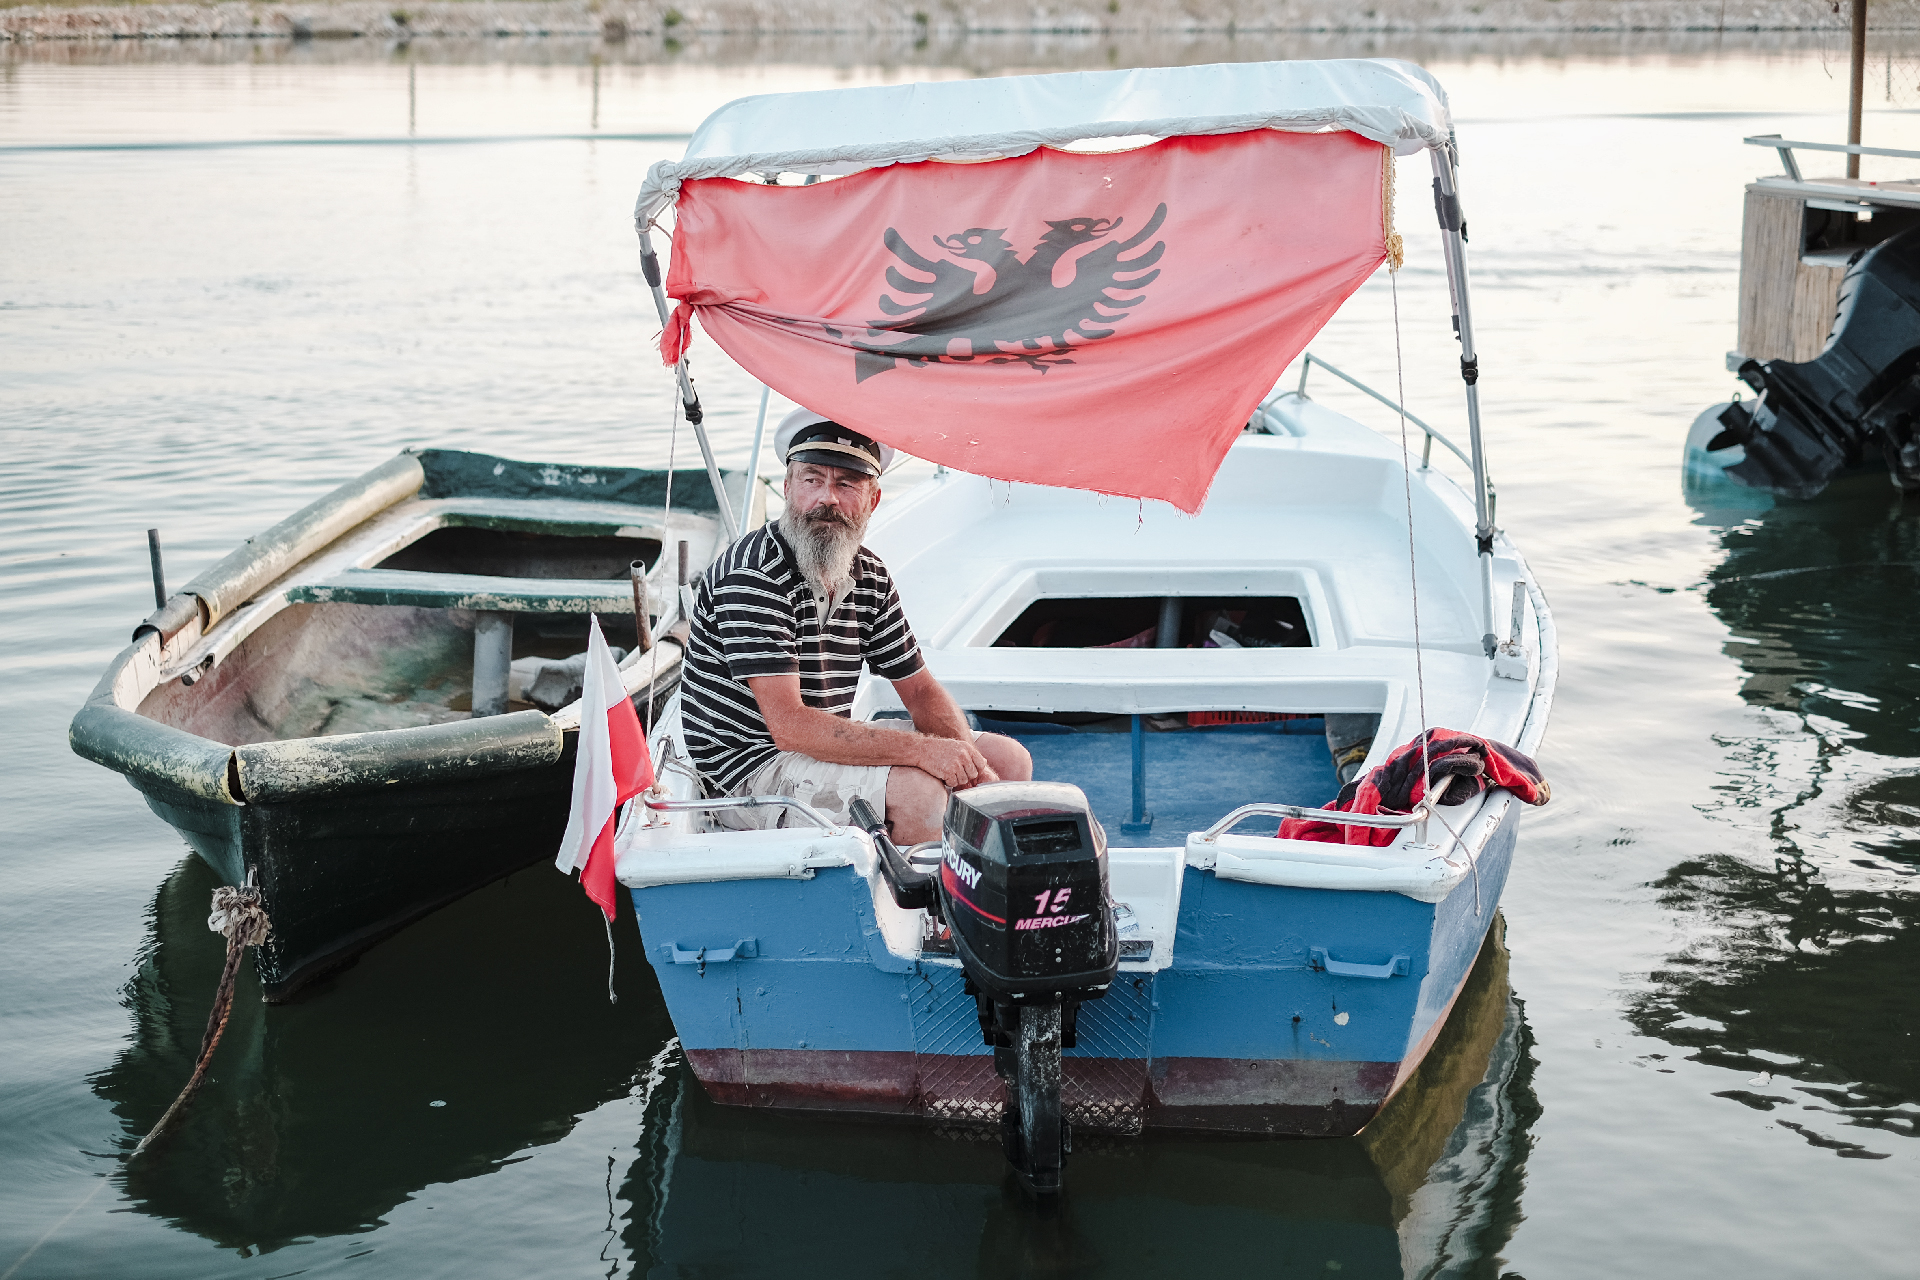 Capitan on his boat with the flag of Albania, road trip best beaches